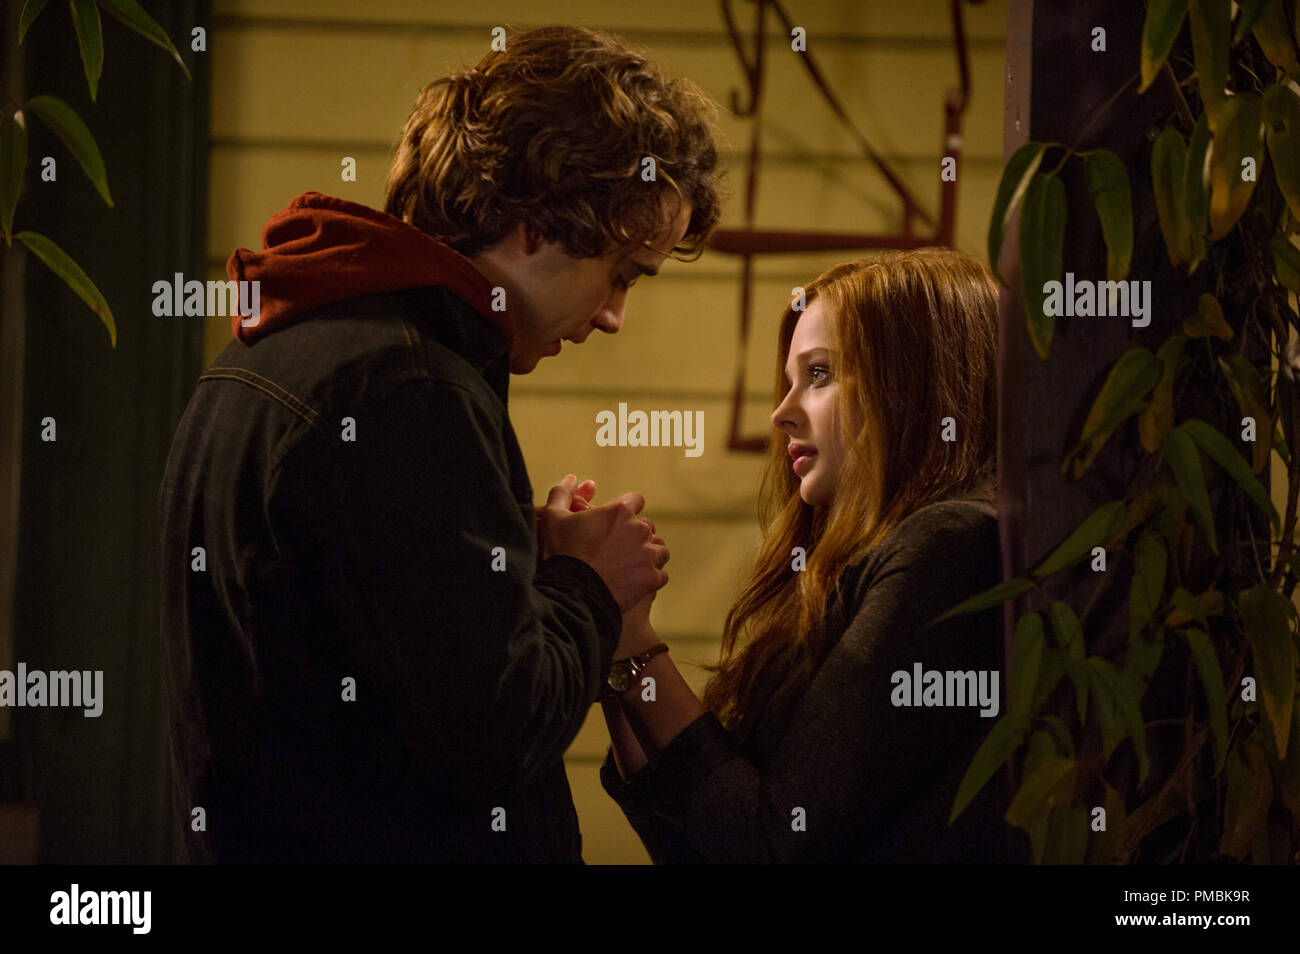 L R Jamie Blackley As Adam And Chloe Grace Moretz As Mia Hall In